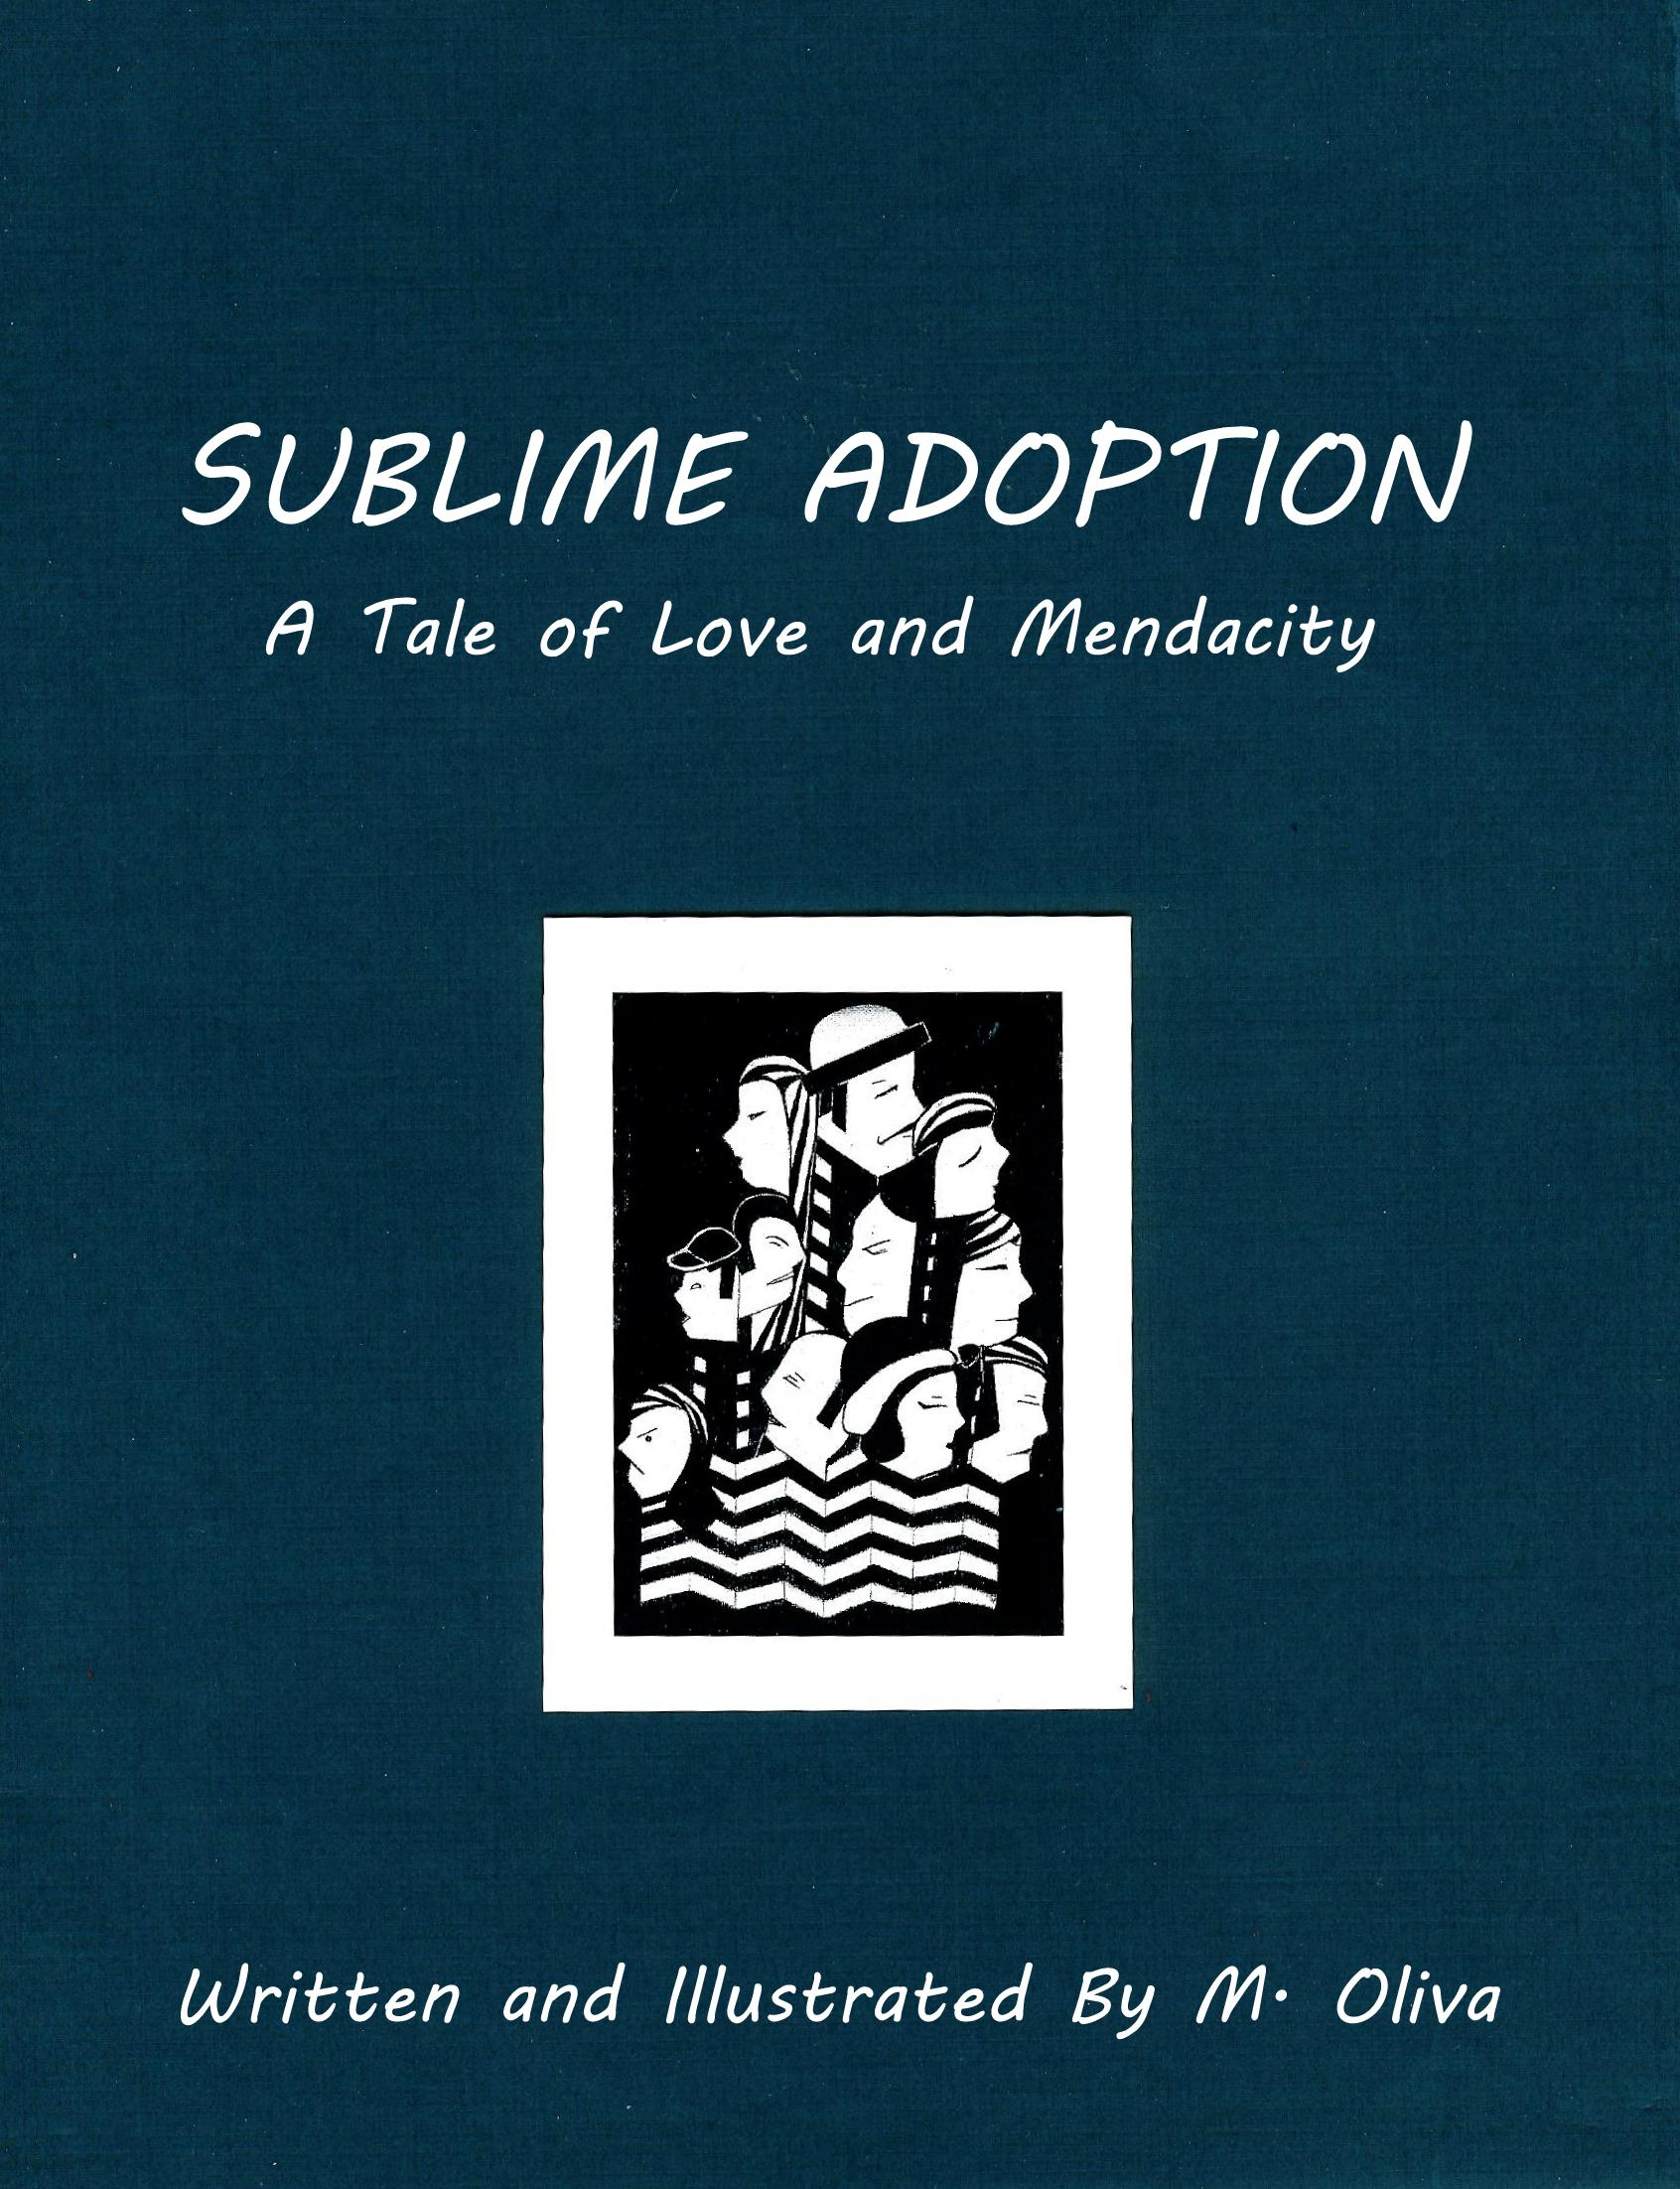 SUBLIME ADOPTION, a Tale of Love and Mendacity